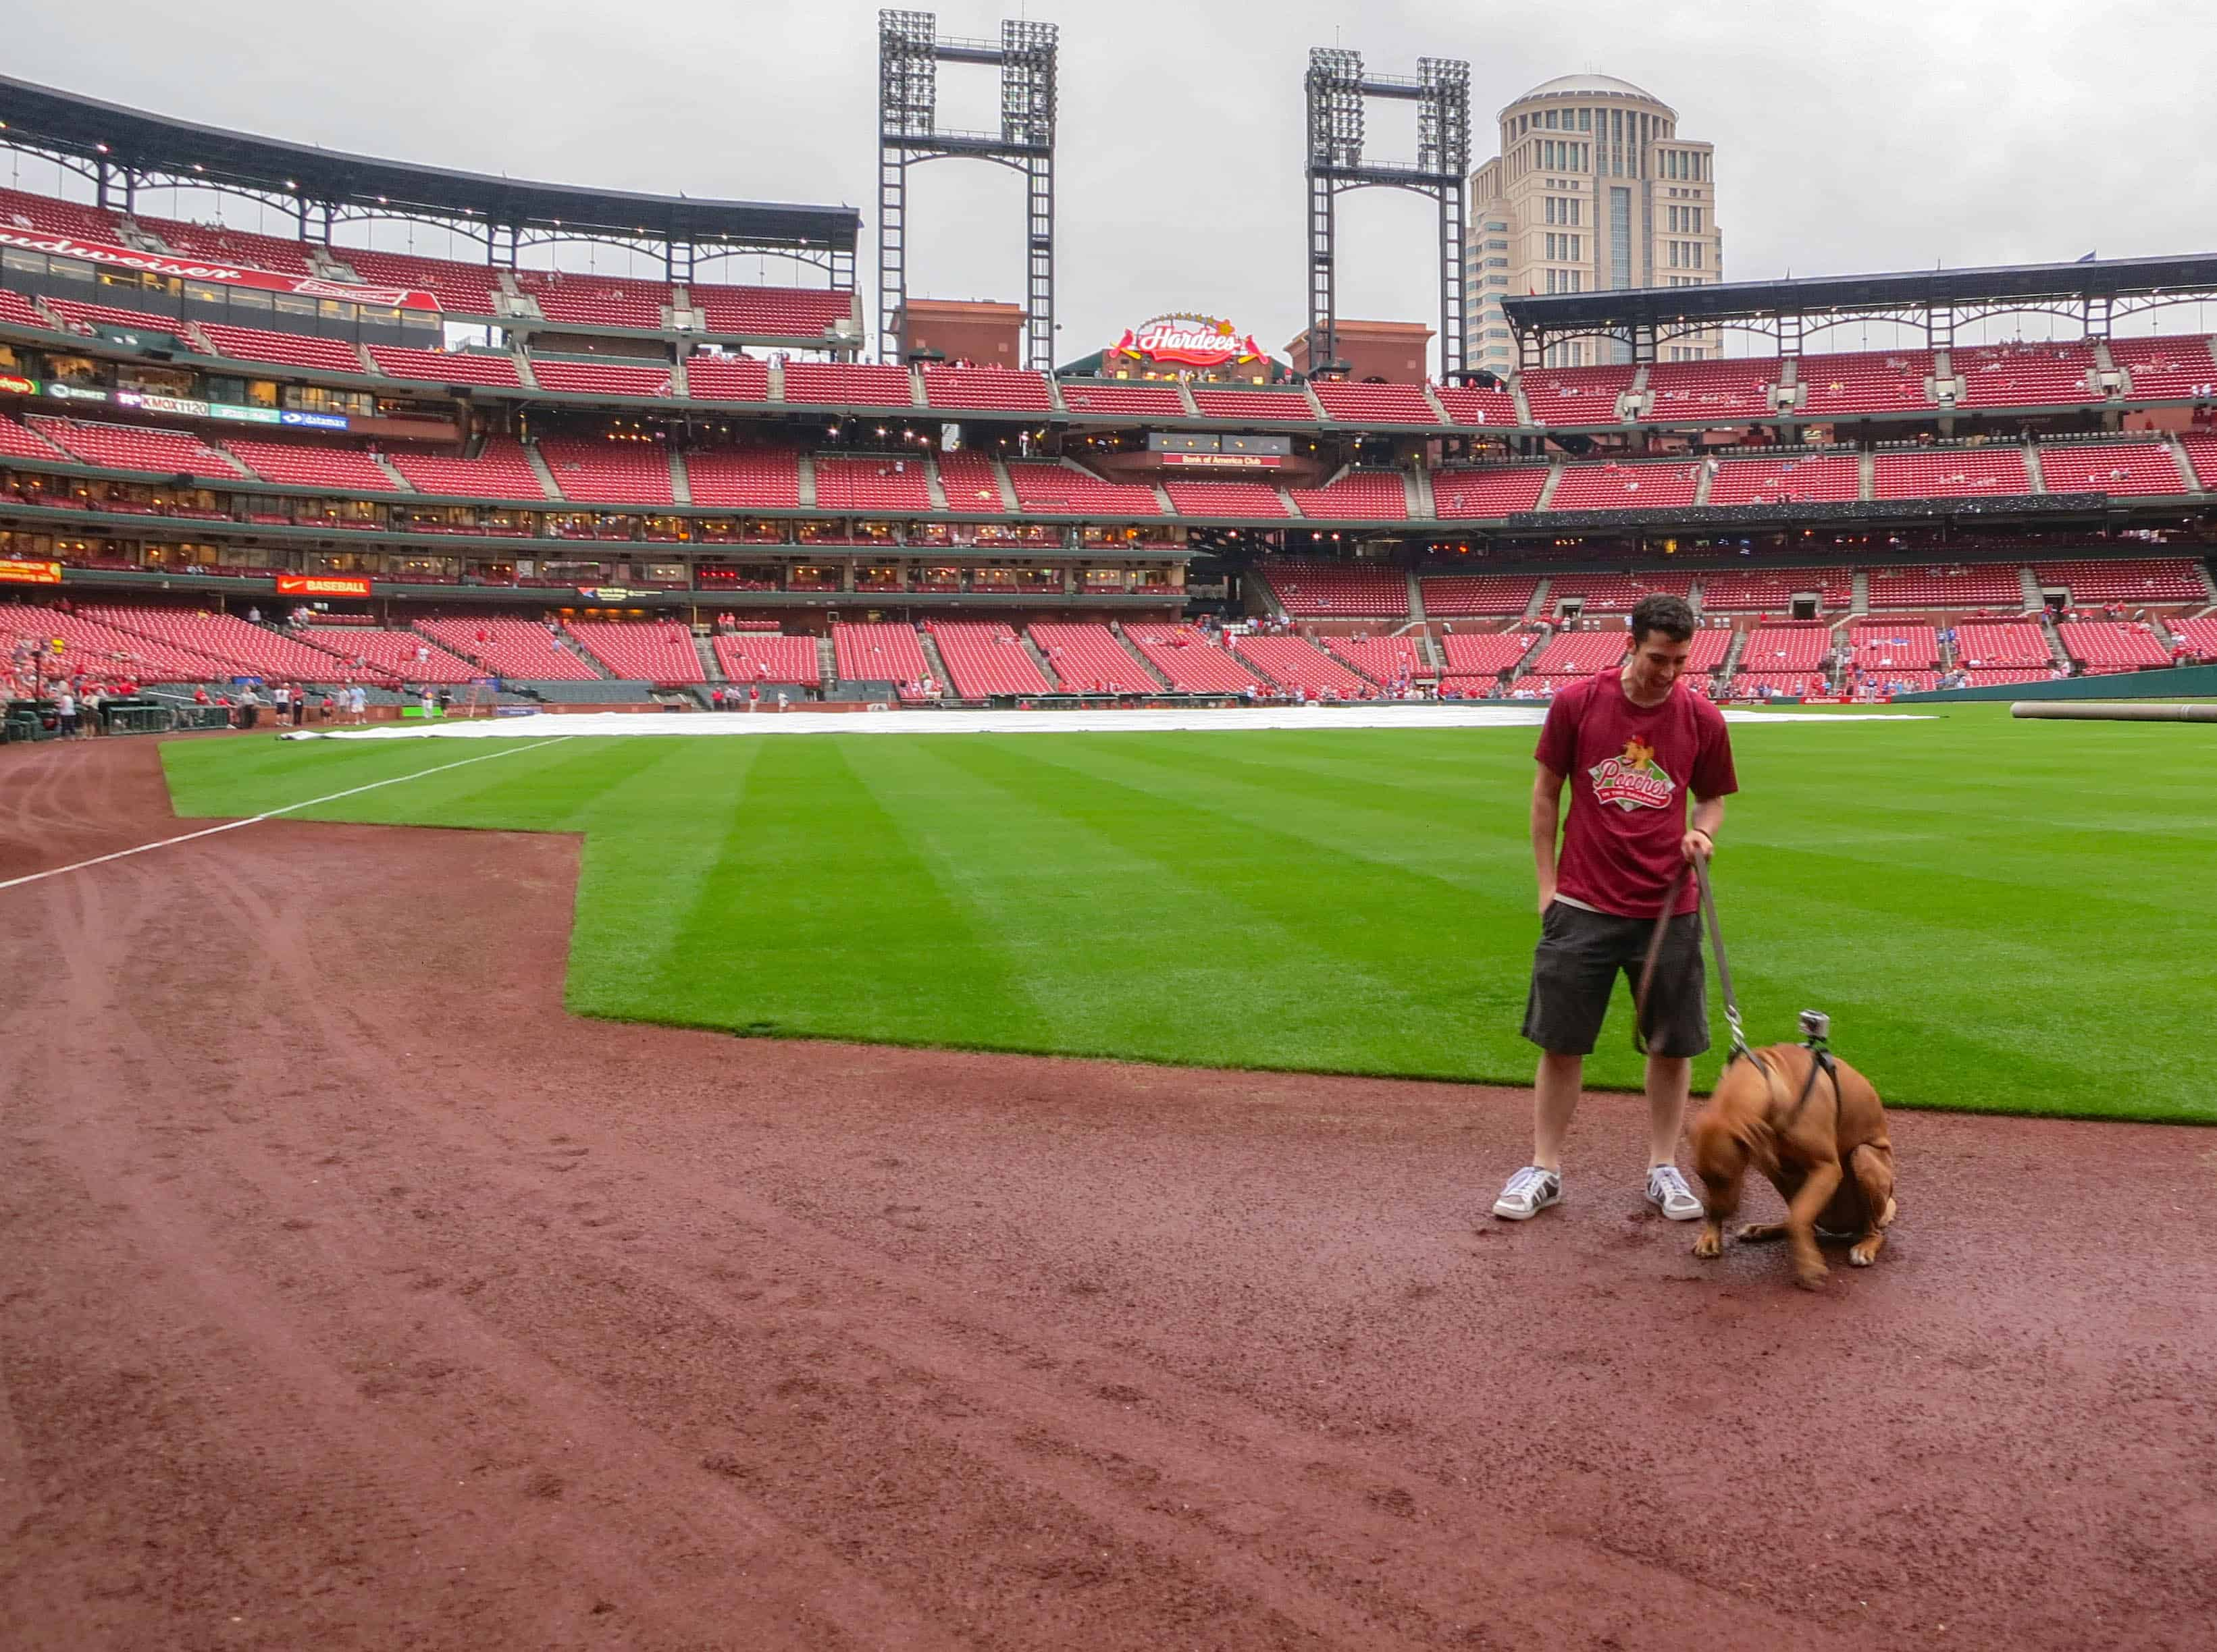 Pooches in the Park, marking our territory, petcentric, purina, st. louis cardinals, dog adventure, dog blog